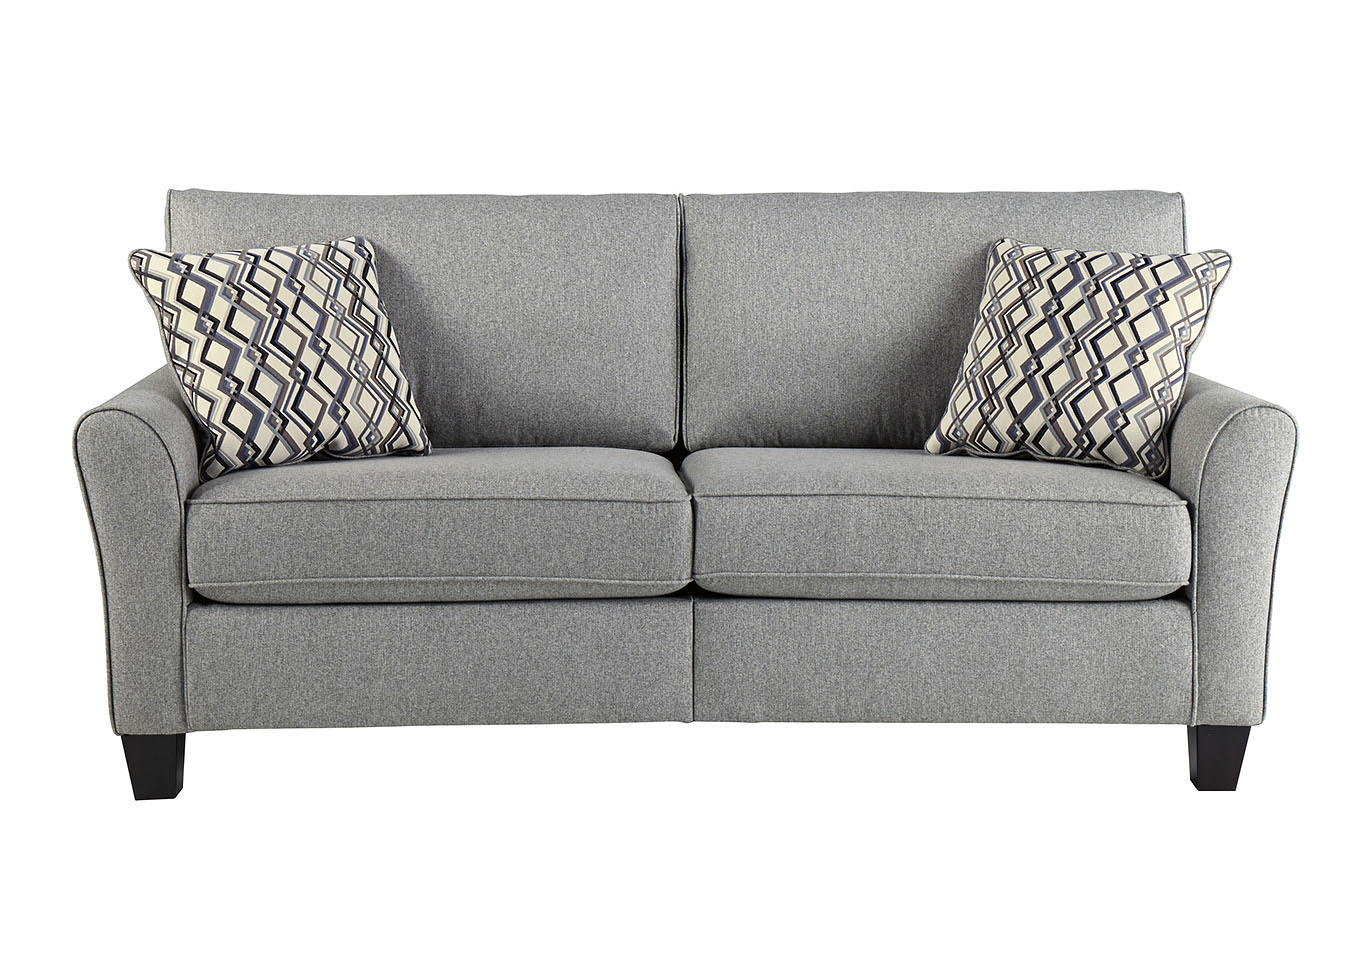 Strehela Silver Sofa,Signature Design By Ashley